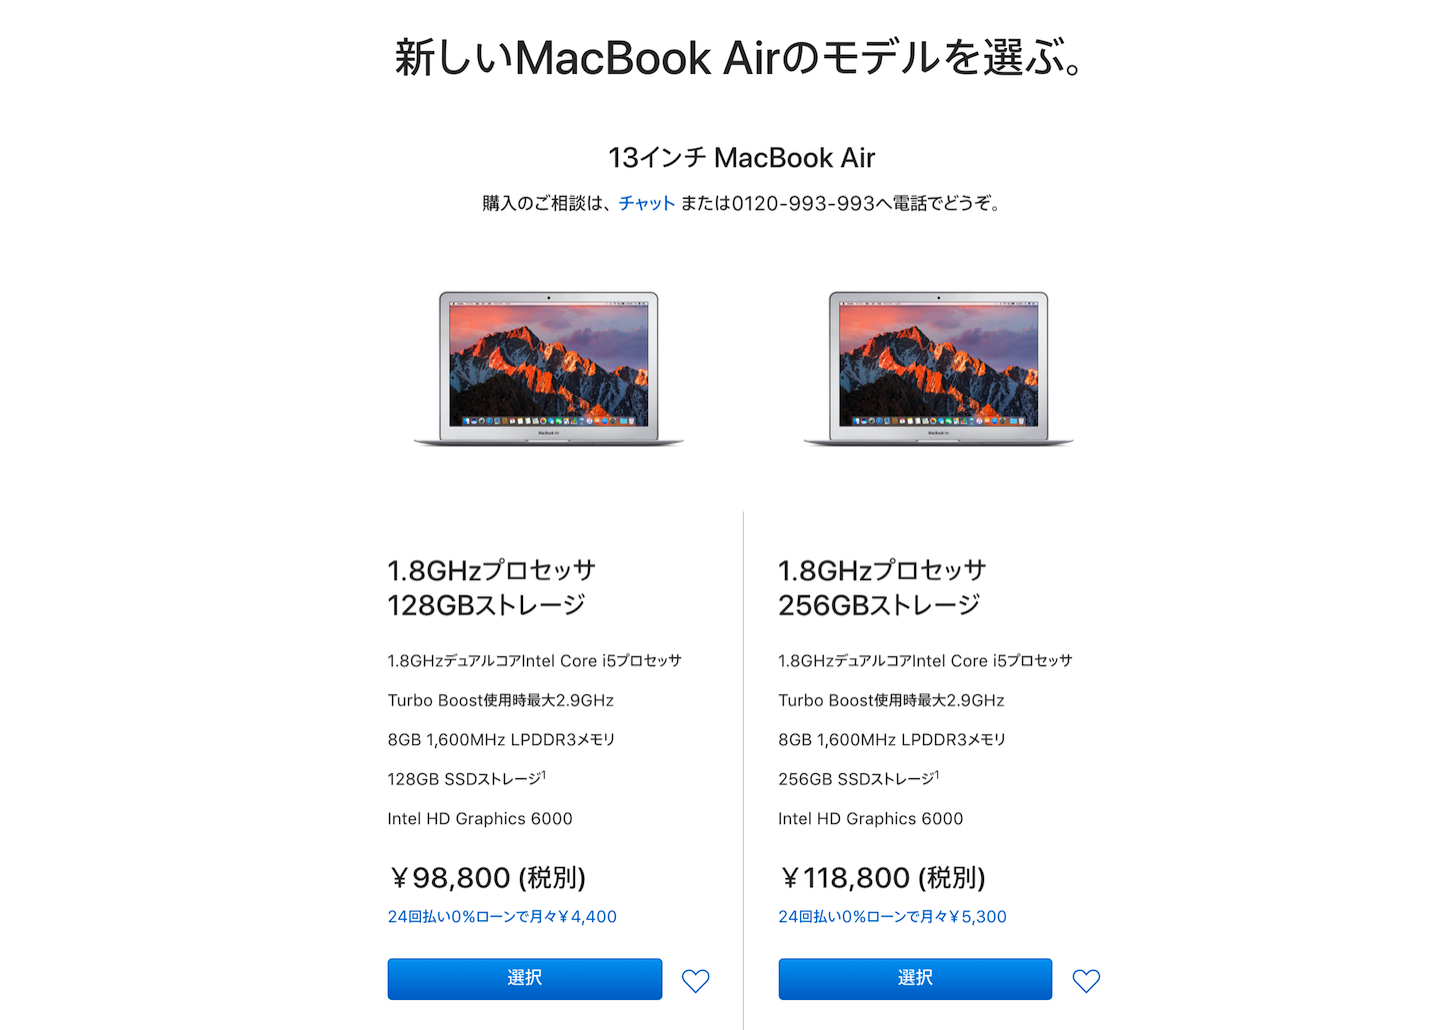 MacBook Air Update